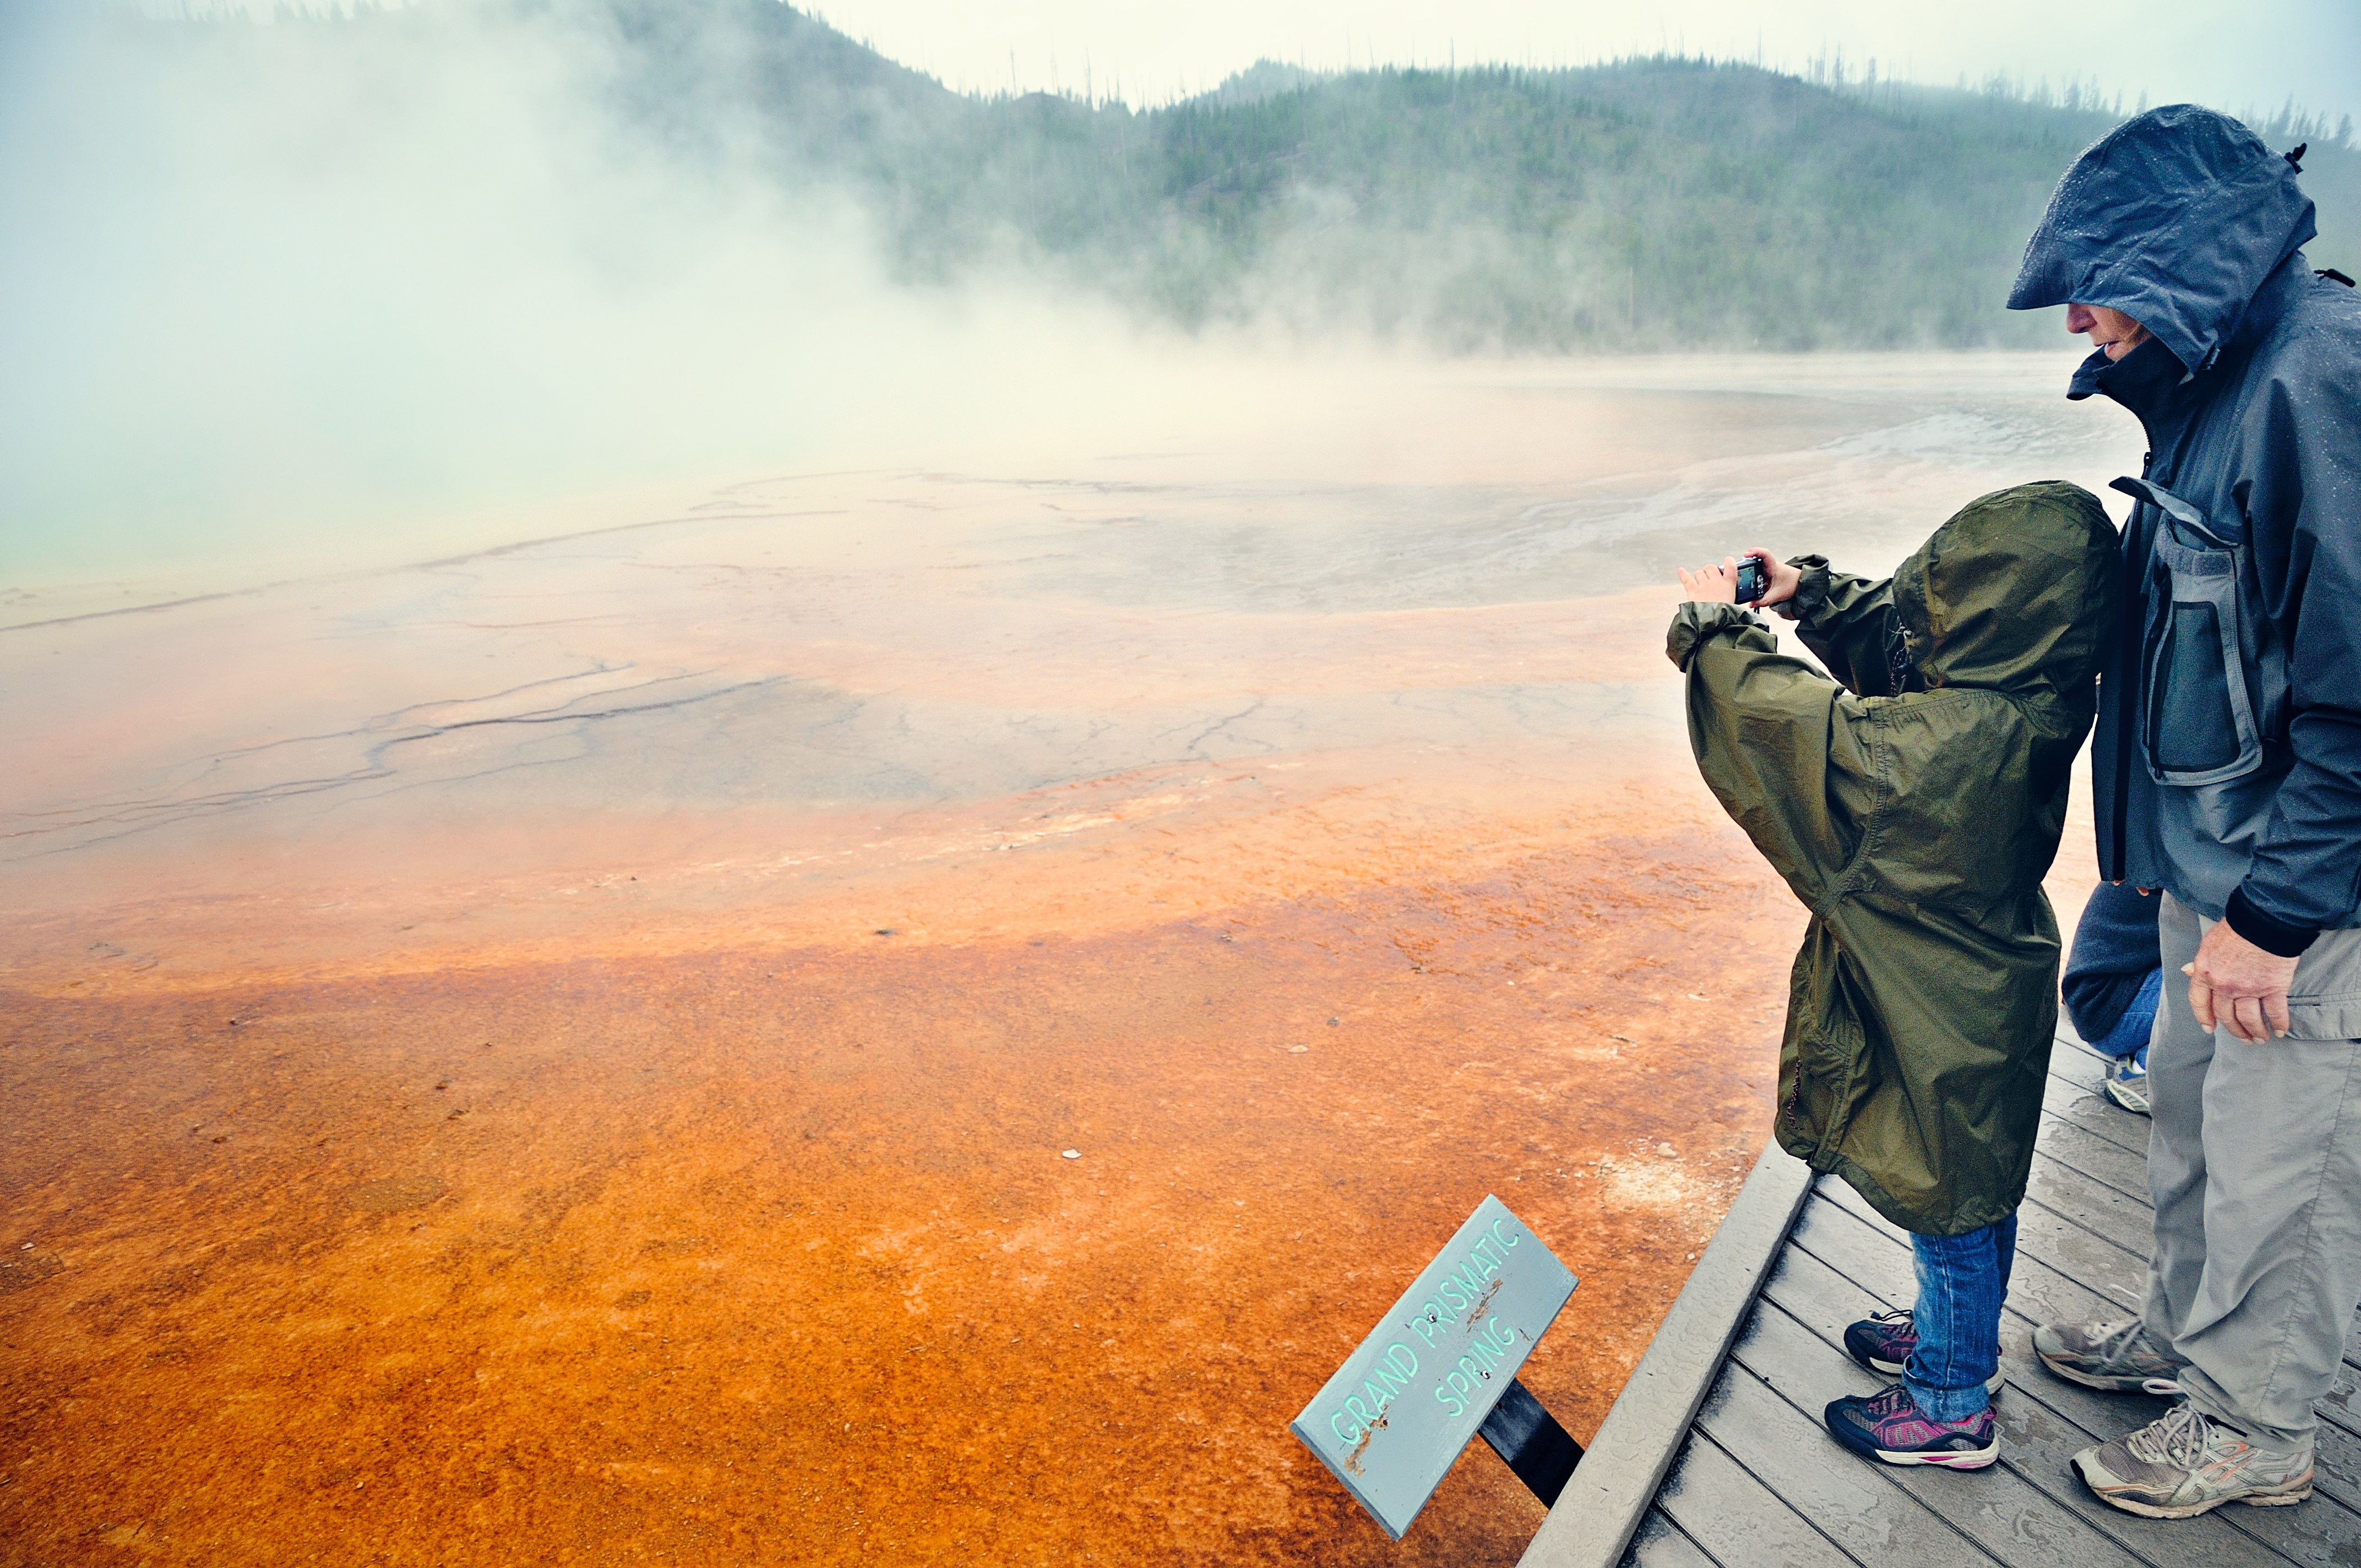 The Grand Prismatic Spring in Yellowstone is a magnet for young photographers